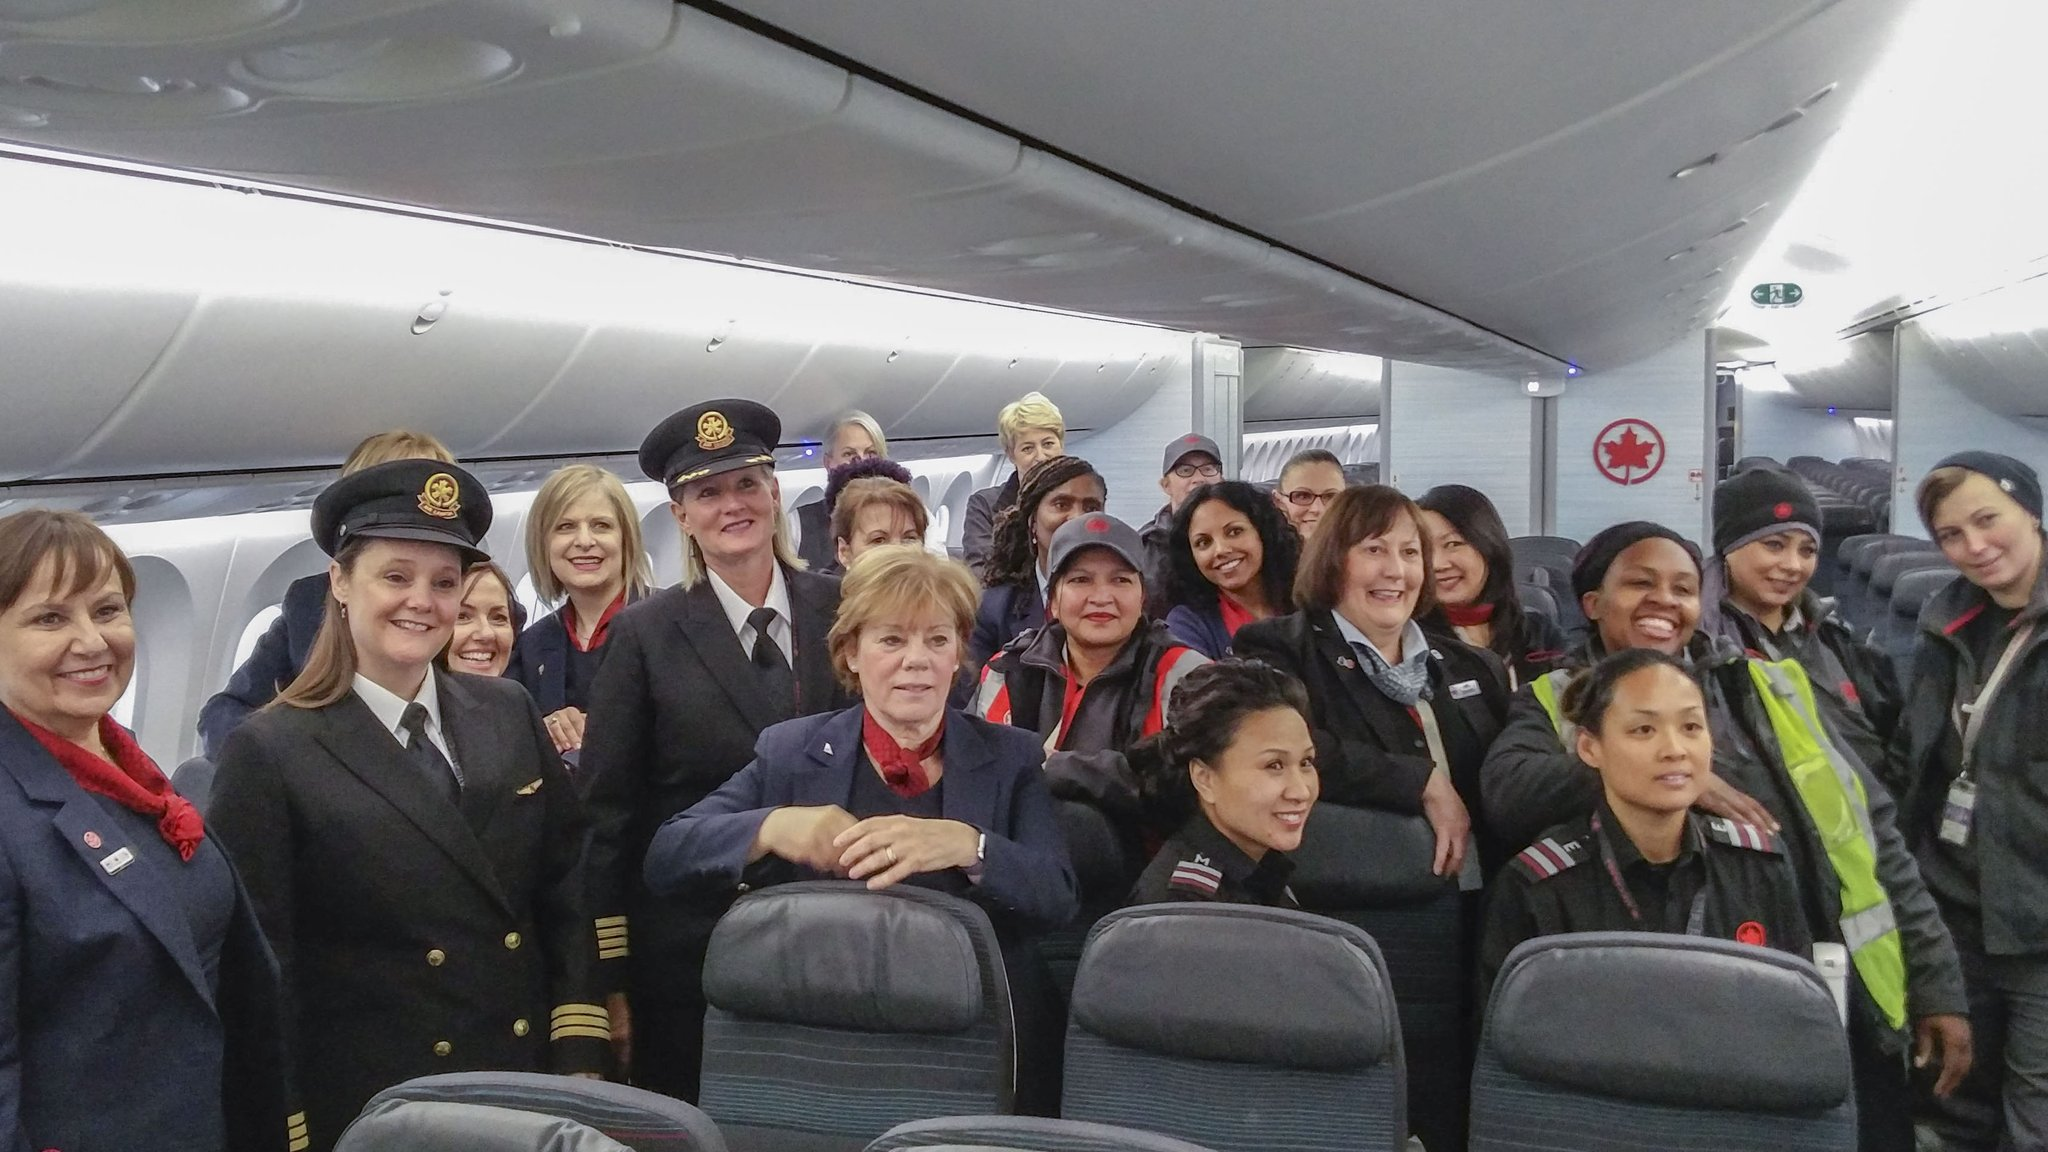 Women pose for photo inside plane